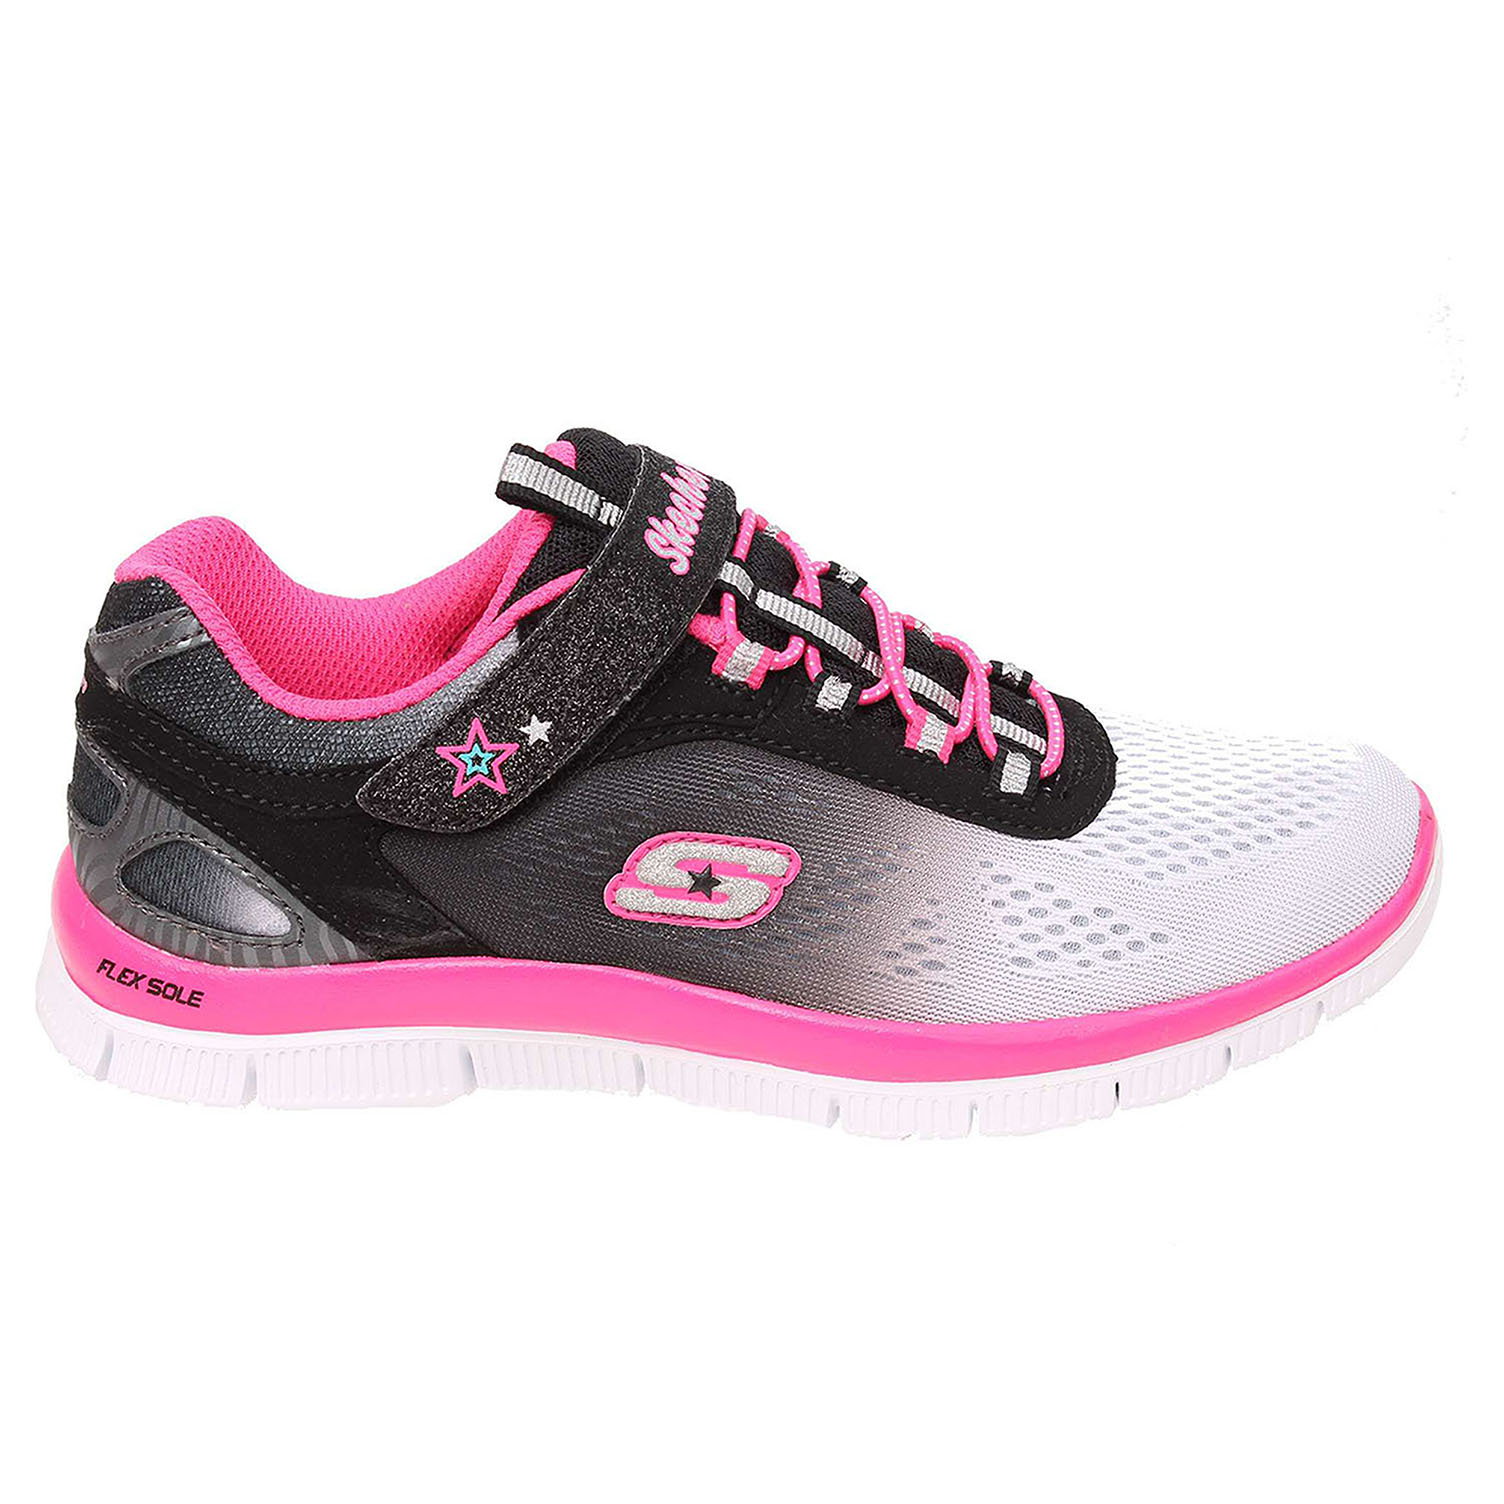 Skechers Skech Appeal white-black-hot pink 27